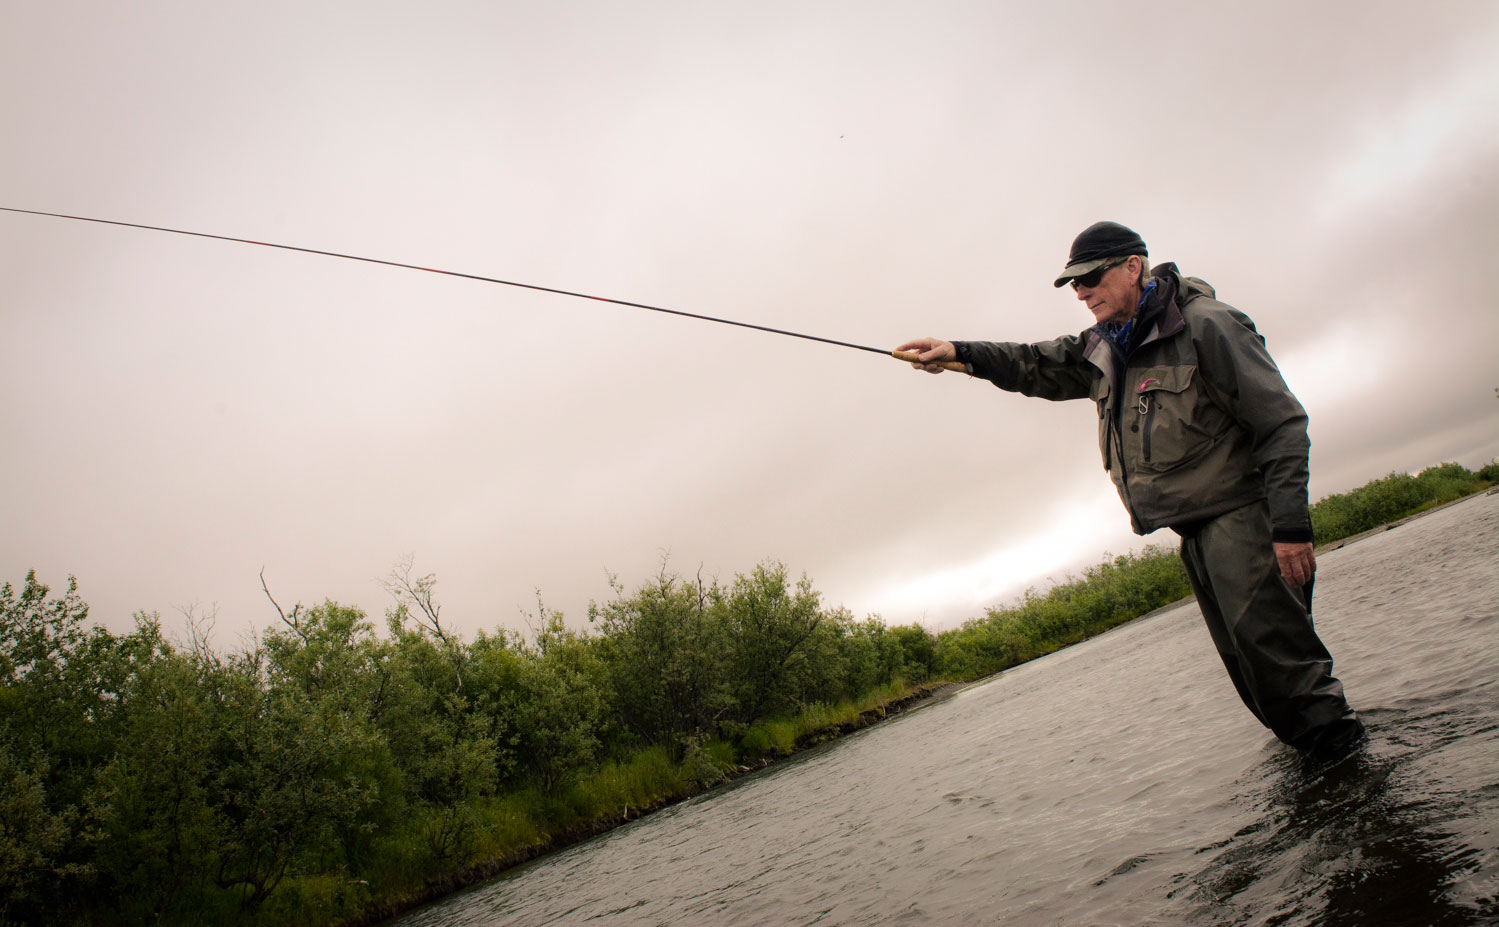 Jim Palmershime gives the tenkara rod a try Photo by Louis Cahill